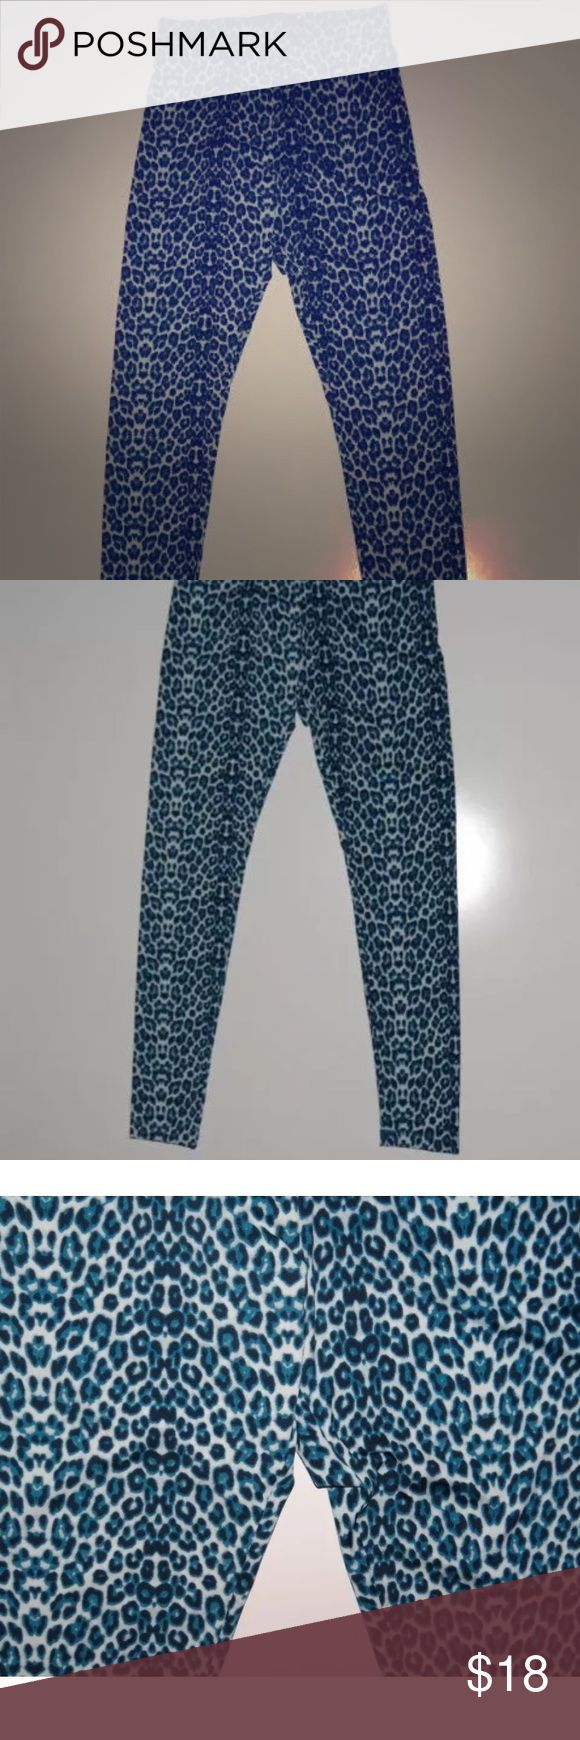 Kardashian kollection leggings xl In perfect condition size xl from the kardashian kollection. Leggings with blue and black animal print Kardashian Kollection Pants Leggings